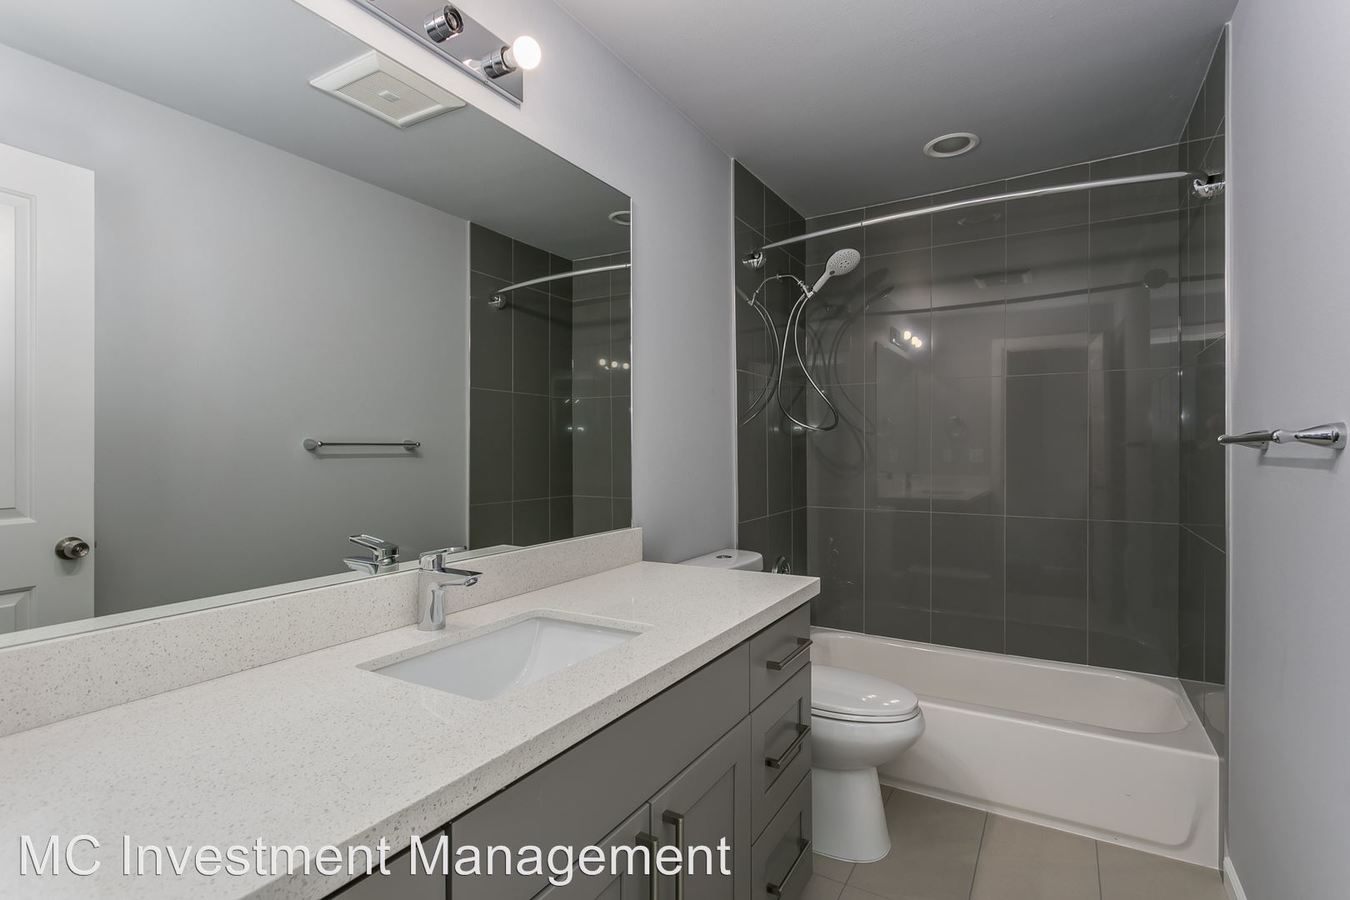 2 Bedrooms 1 Bathroom Apartment for rent at 1500 16th Avenue in Seattle, WA